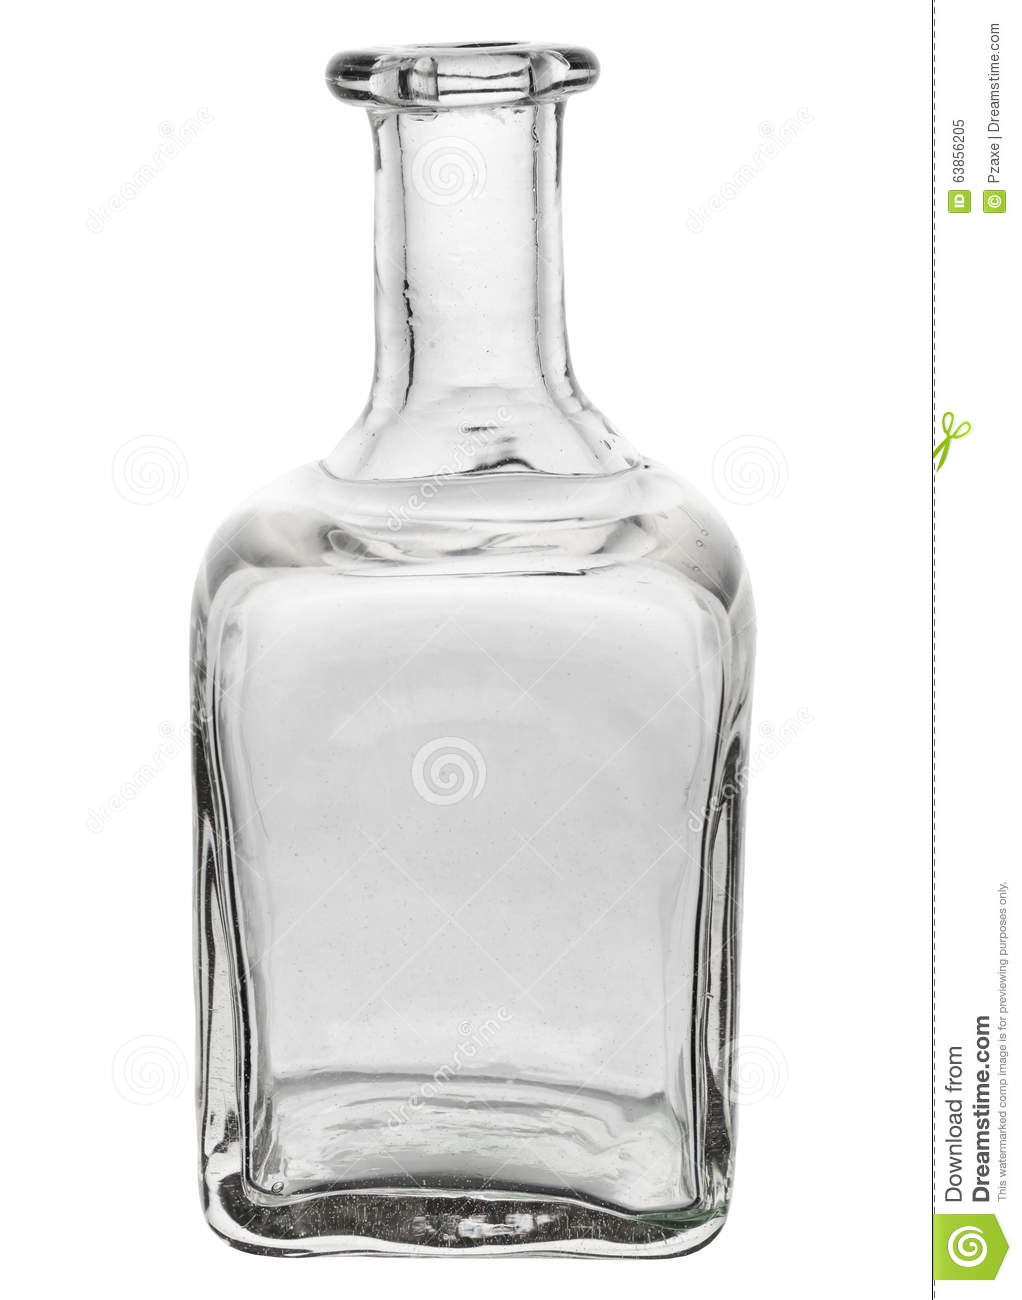 Beautiful glass bottle with curved edges